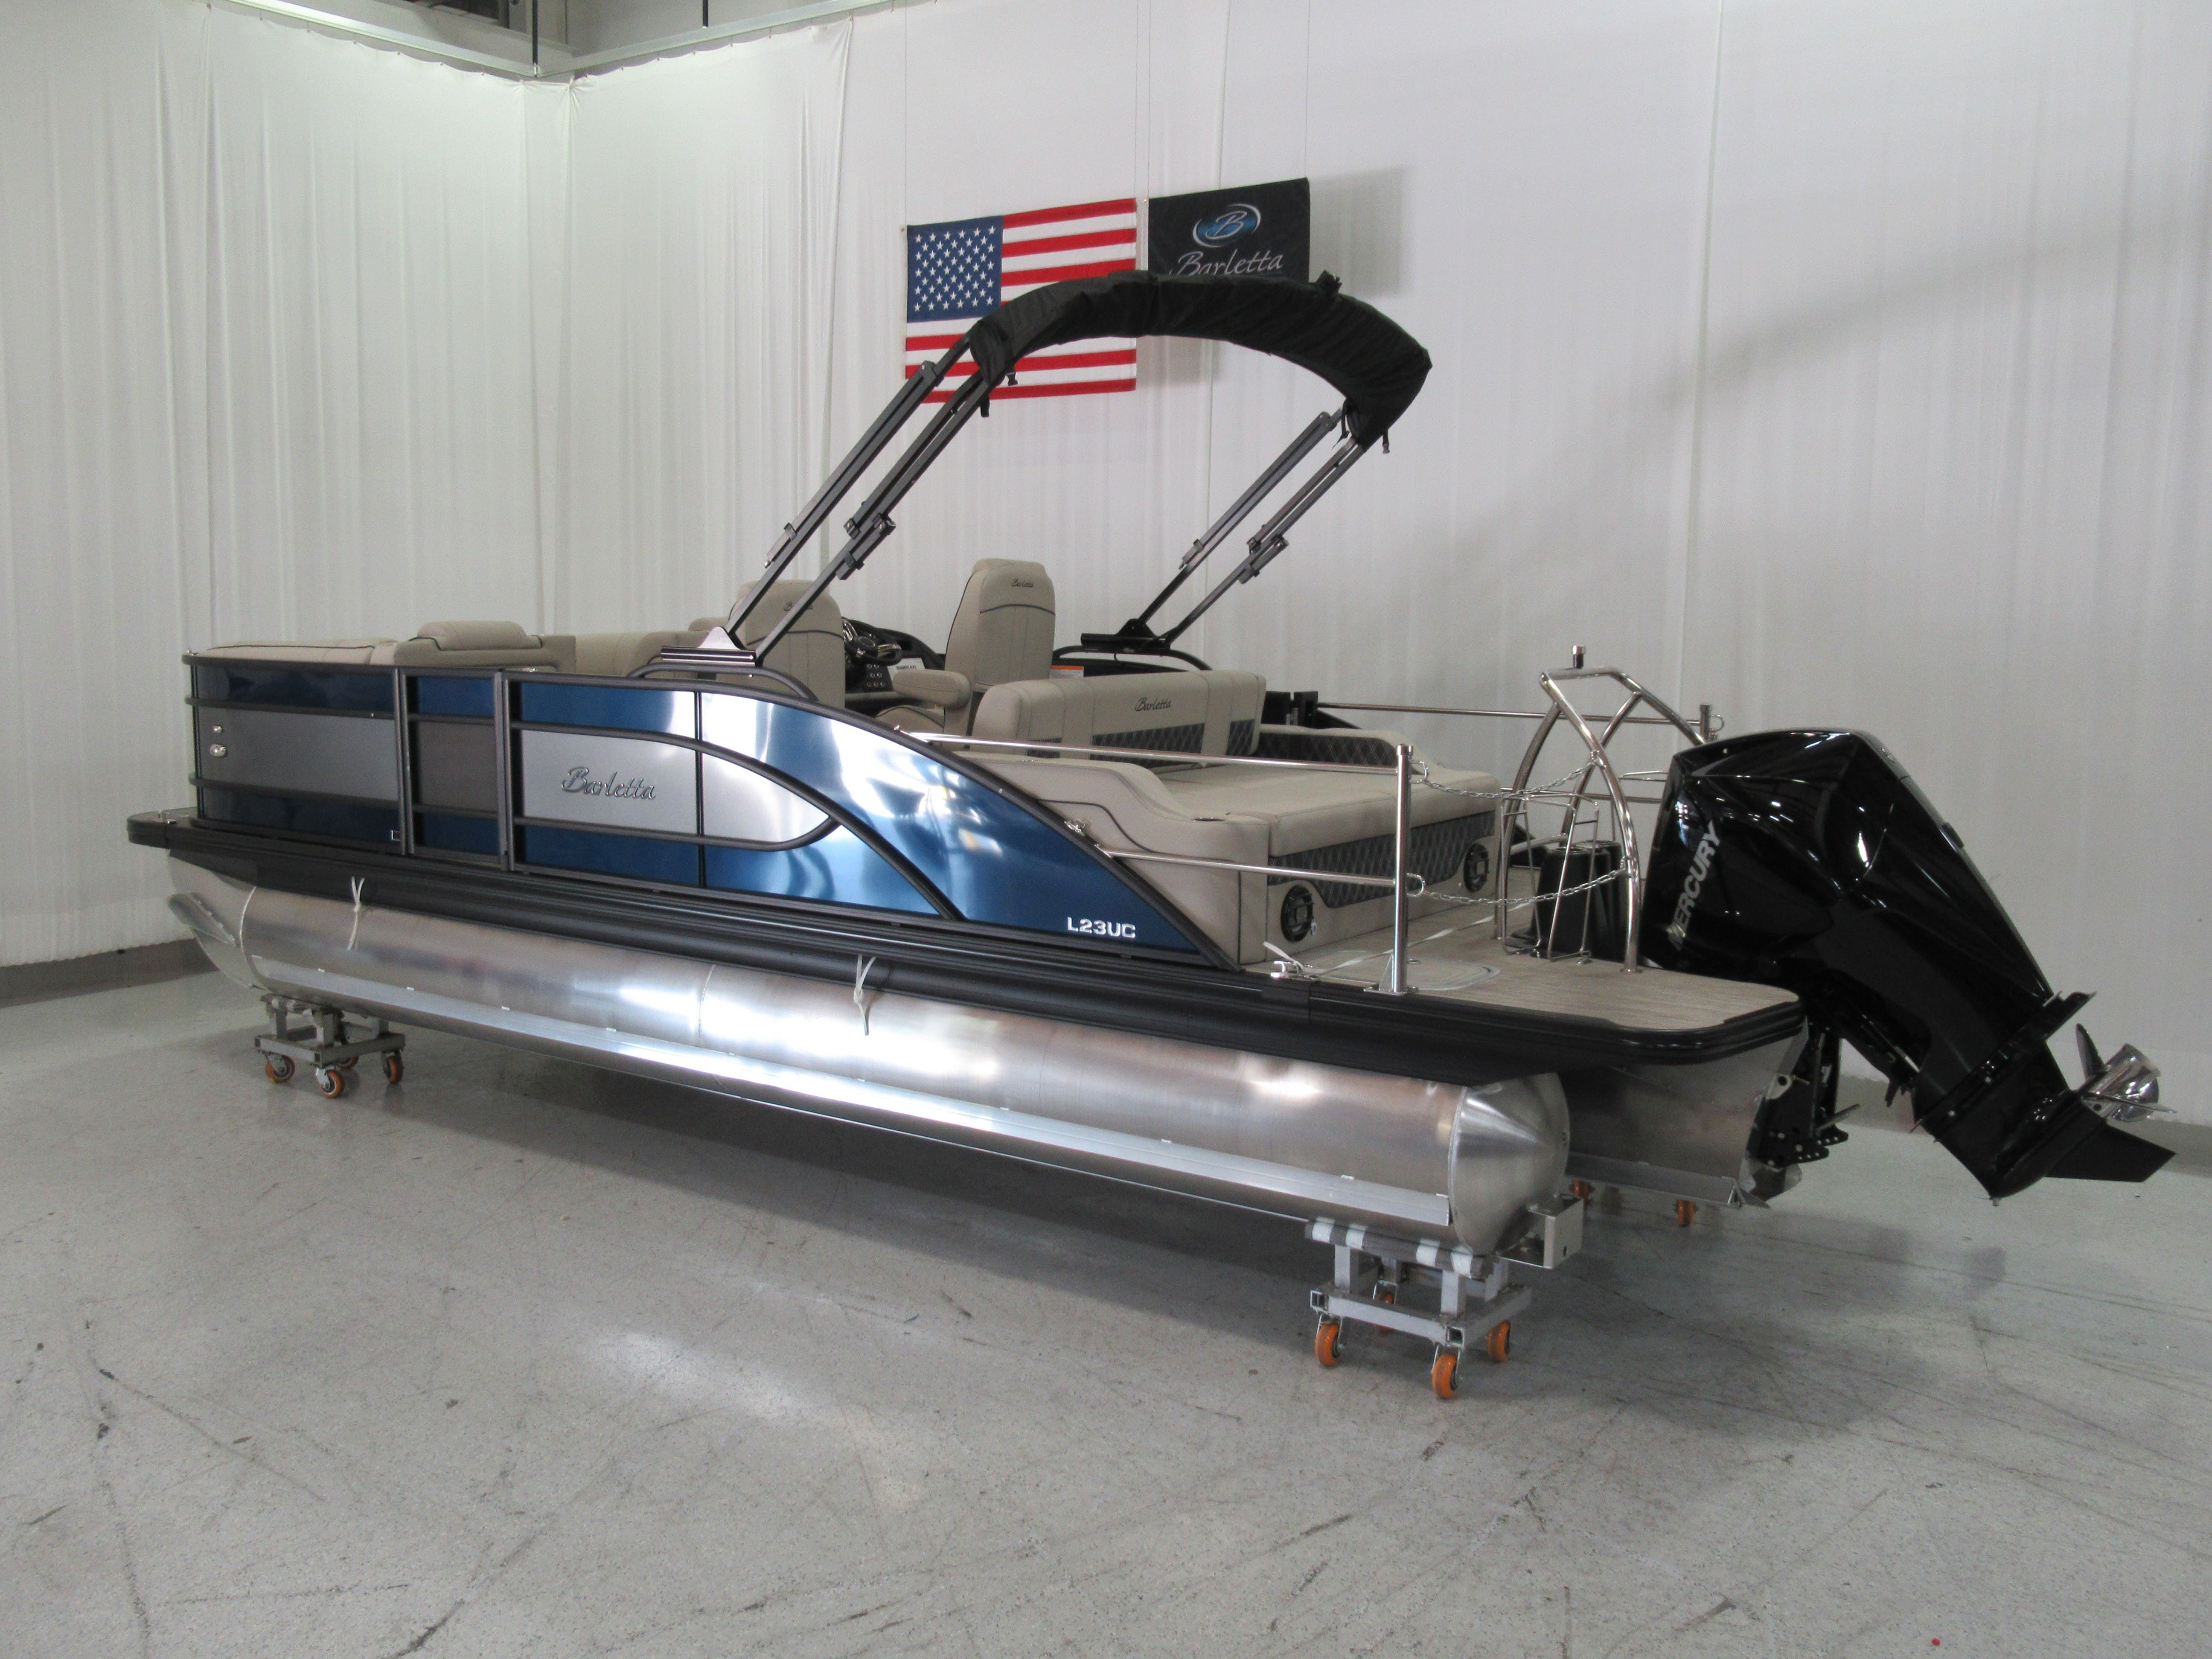 2021 Barletta boat for sale, model of the boat is L-Class & Image # 4 of 12